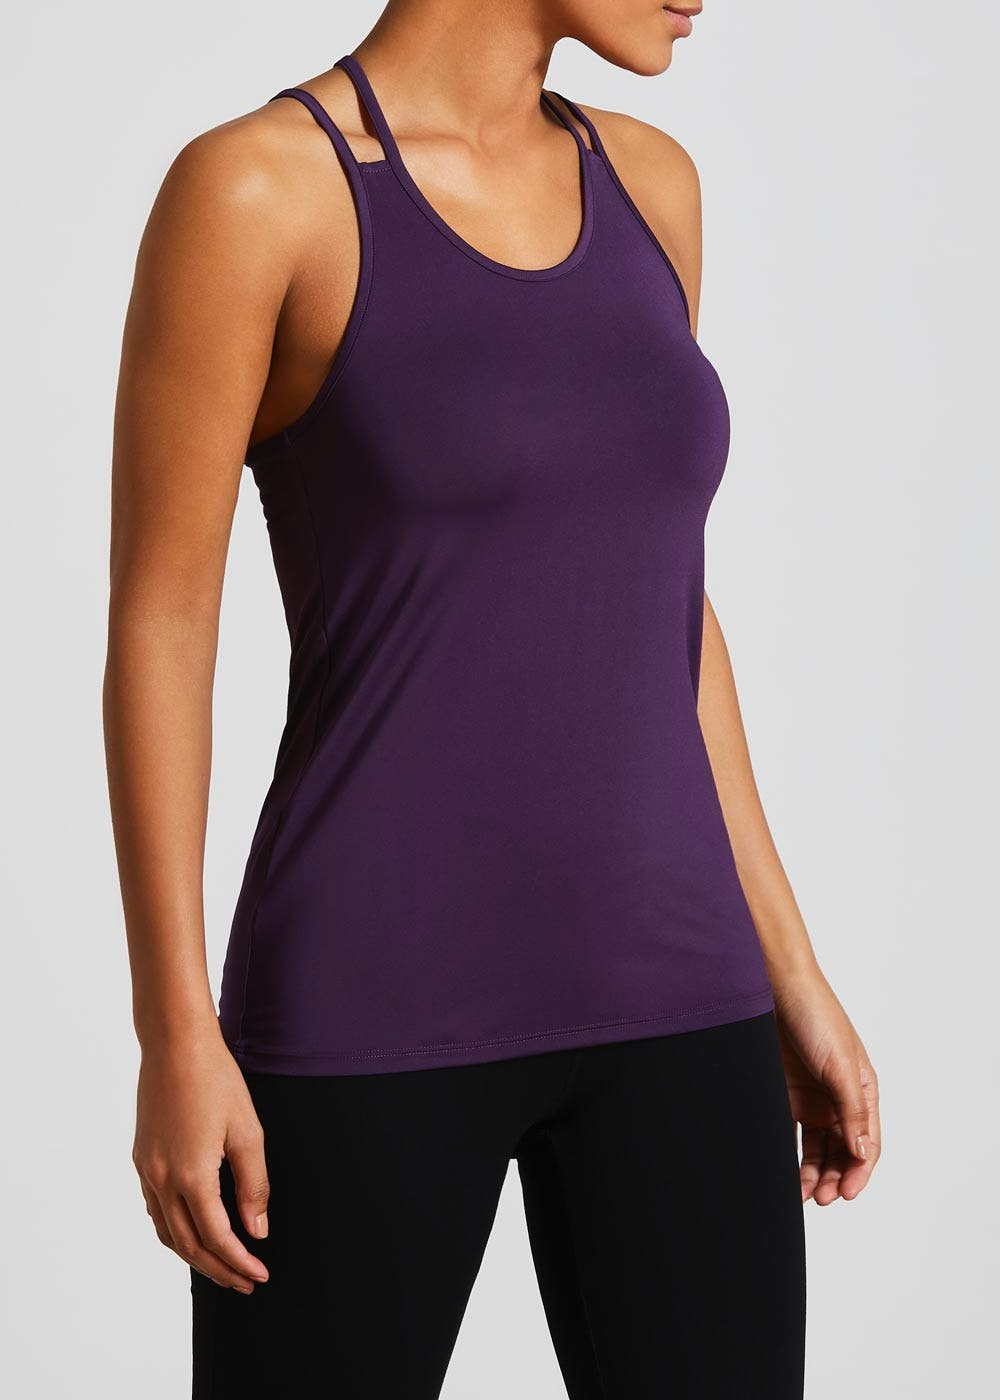 Activewear Size 16 Activewear Vest From Peacocks Women's Clothing